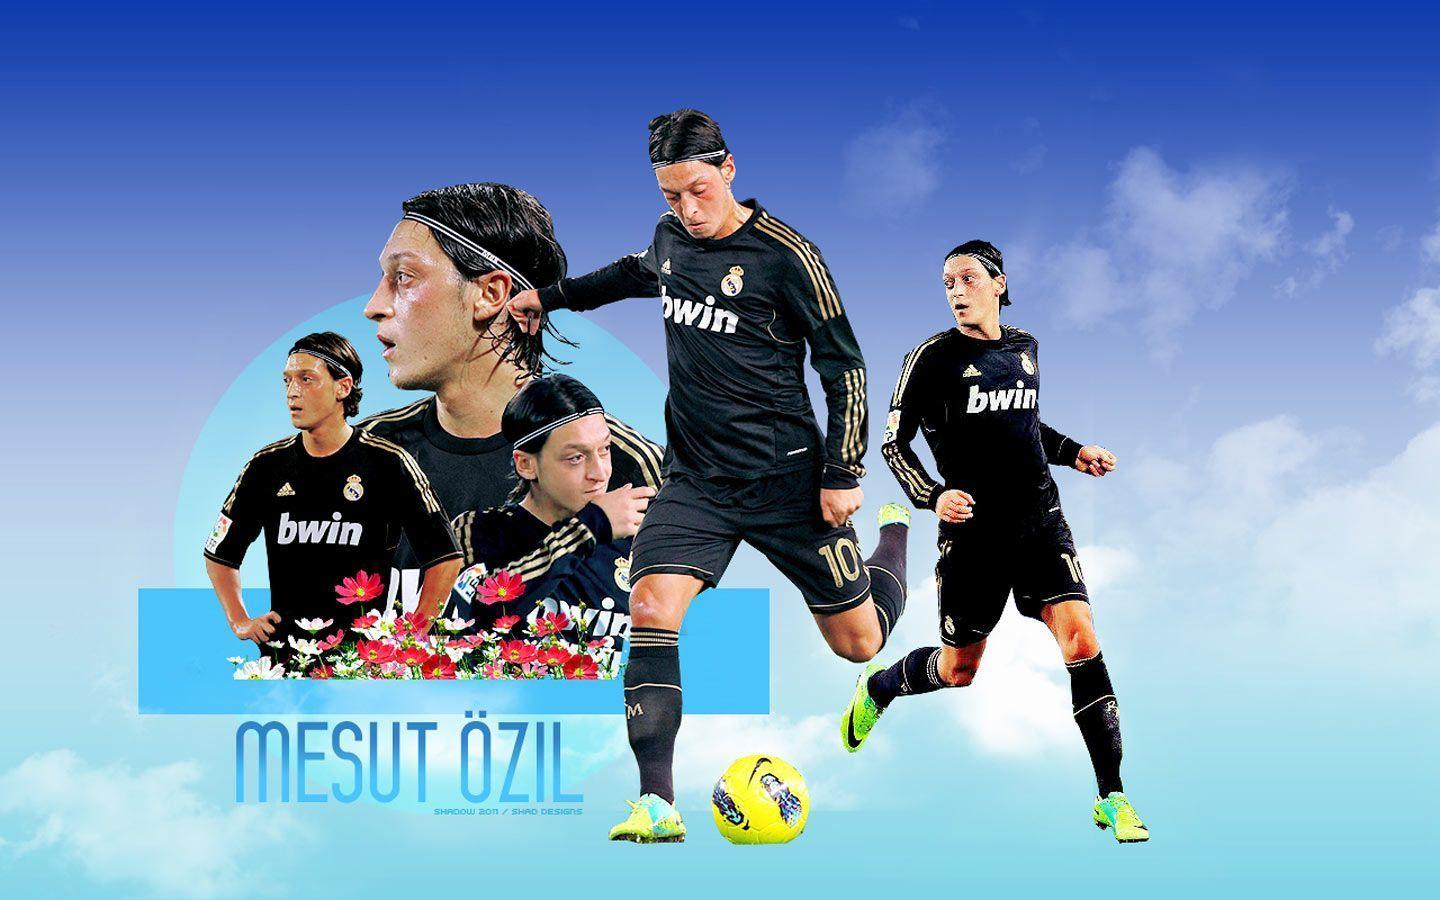 Mesut Ozil Wallpapers 2012 Wallpapers